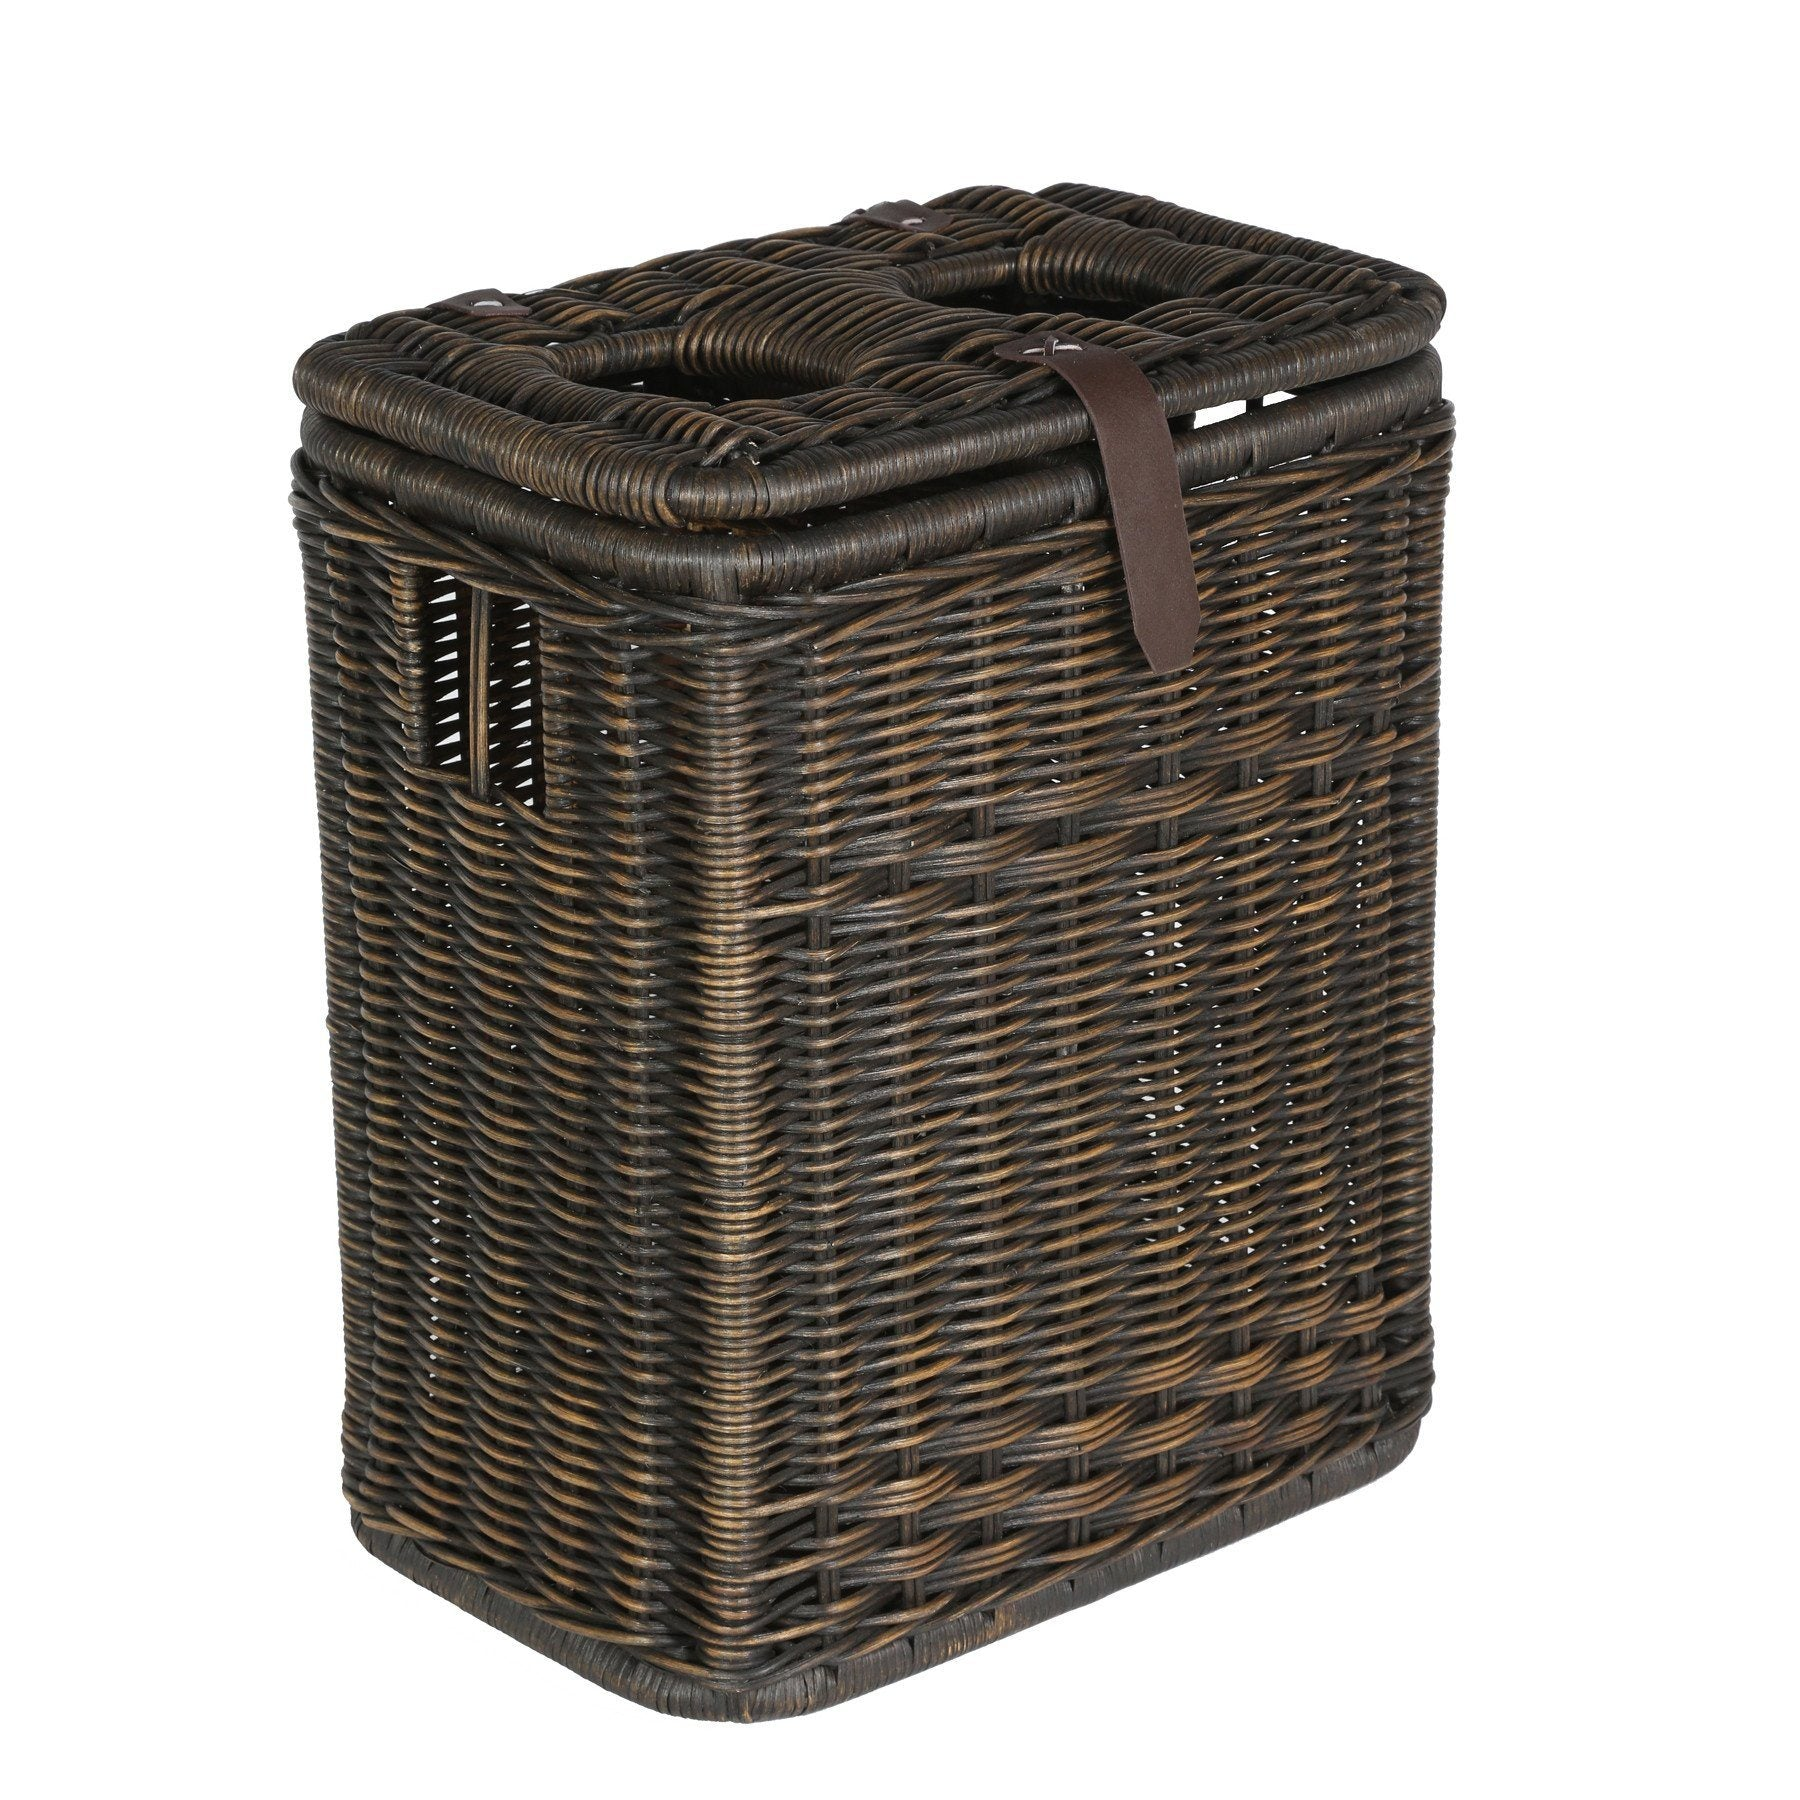 Wicker Waste Recycling Cans Baskets And Bins The Basket Lady